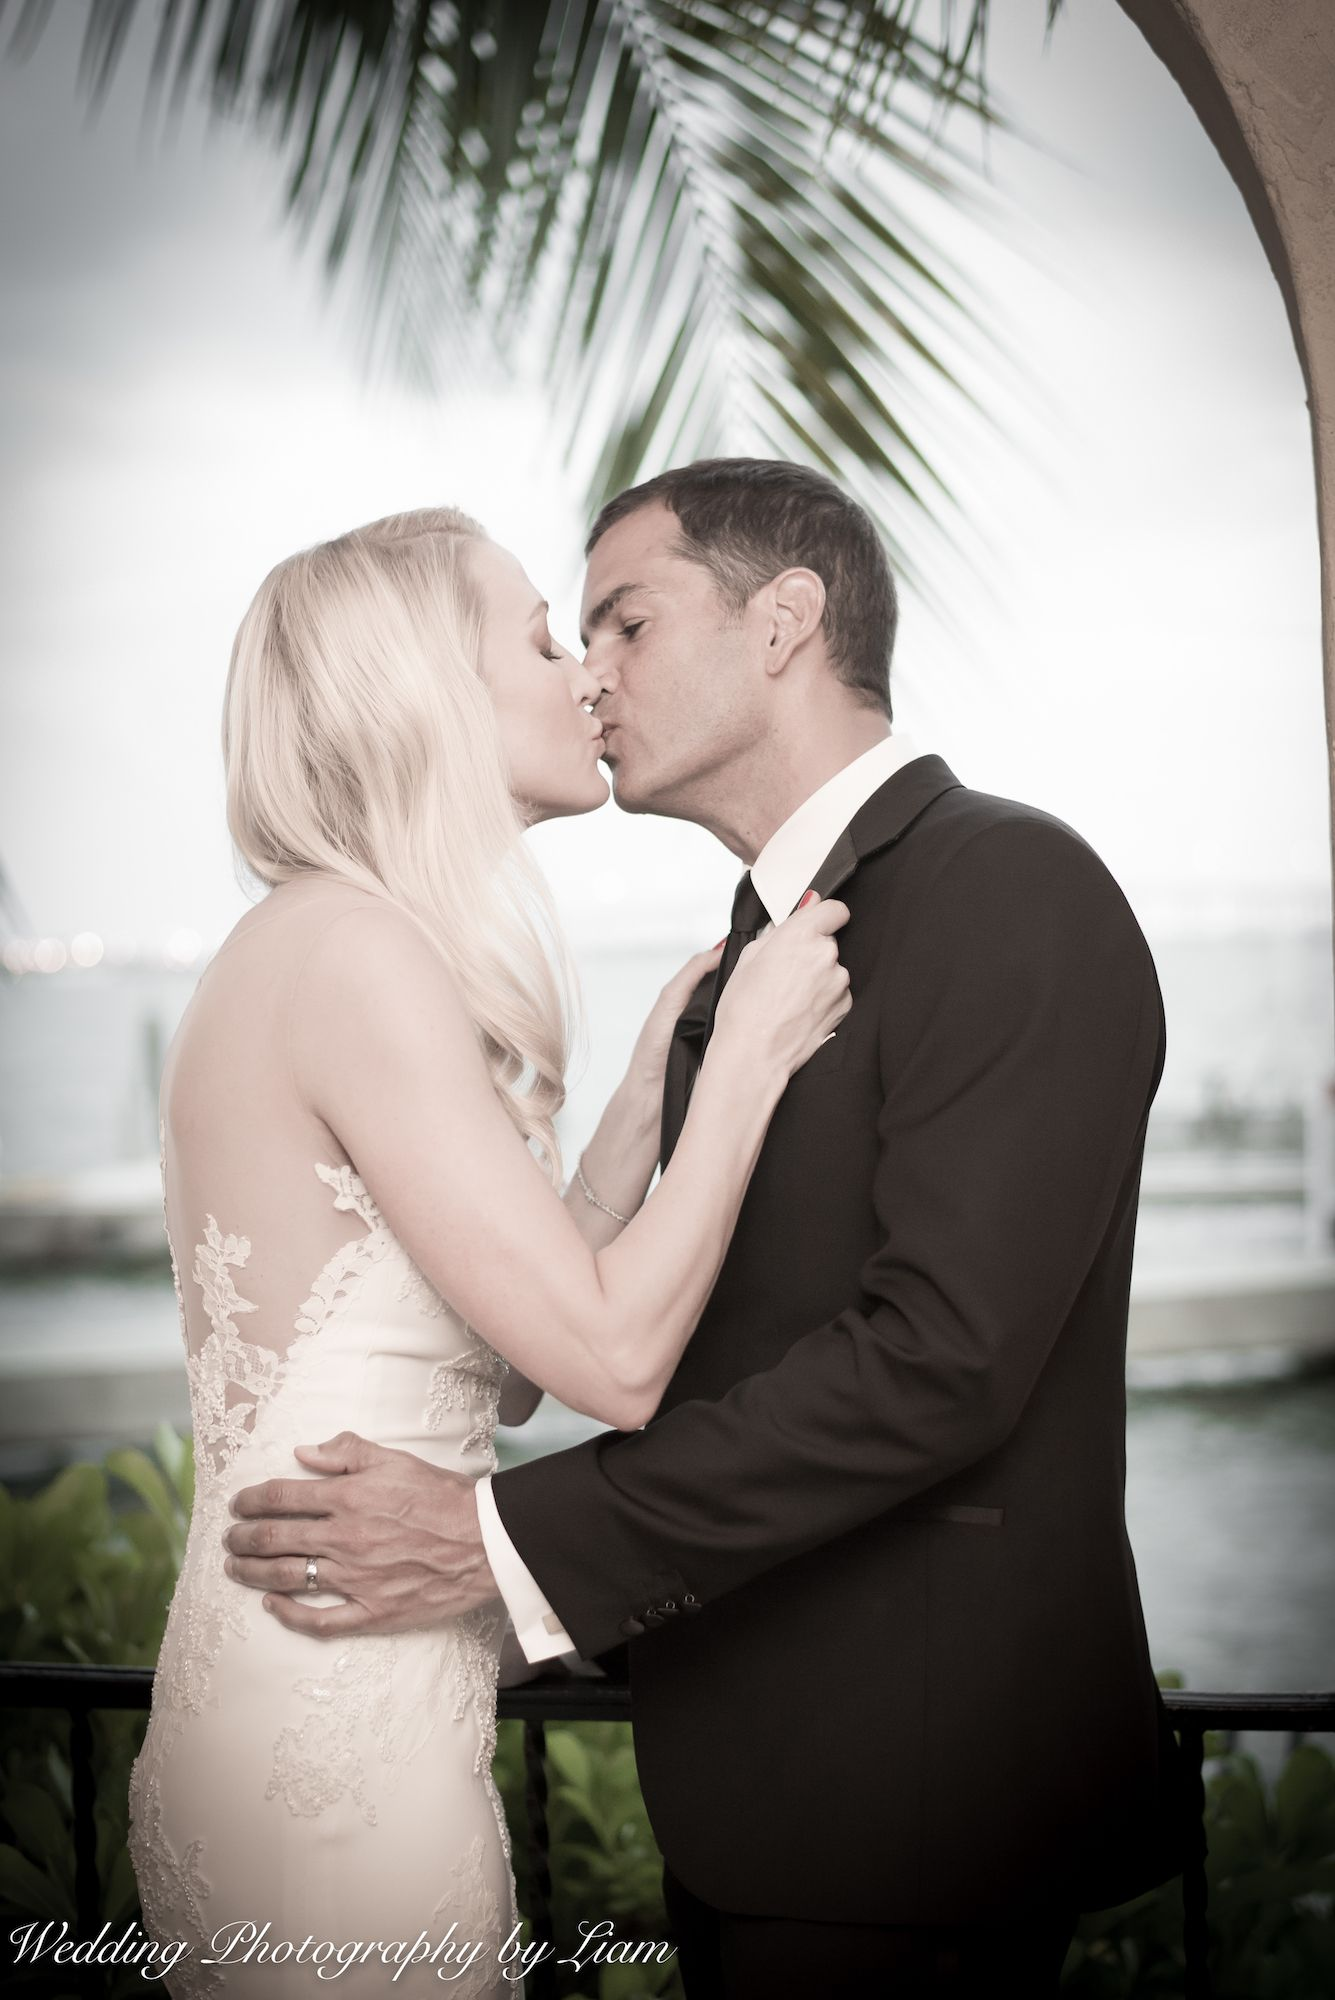 Beautiful Wedding Couple Barbara And Federico In Miami 3 In Addition To Weddings We Photogr Miami Wedding Photographer Wedding Couples Wedding Photographers